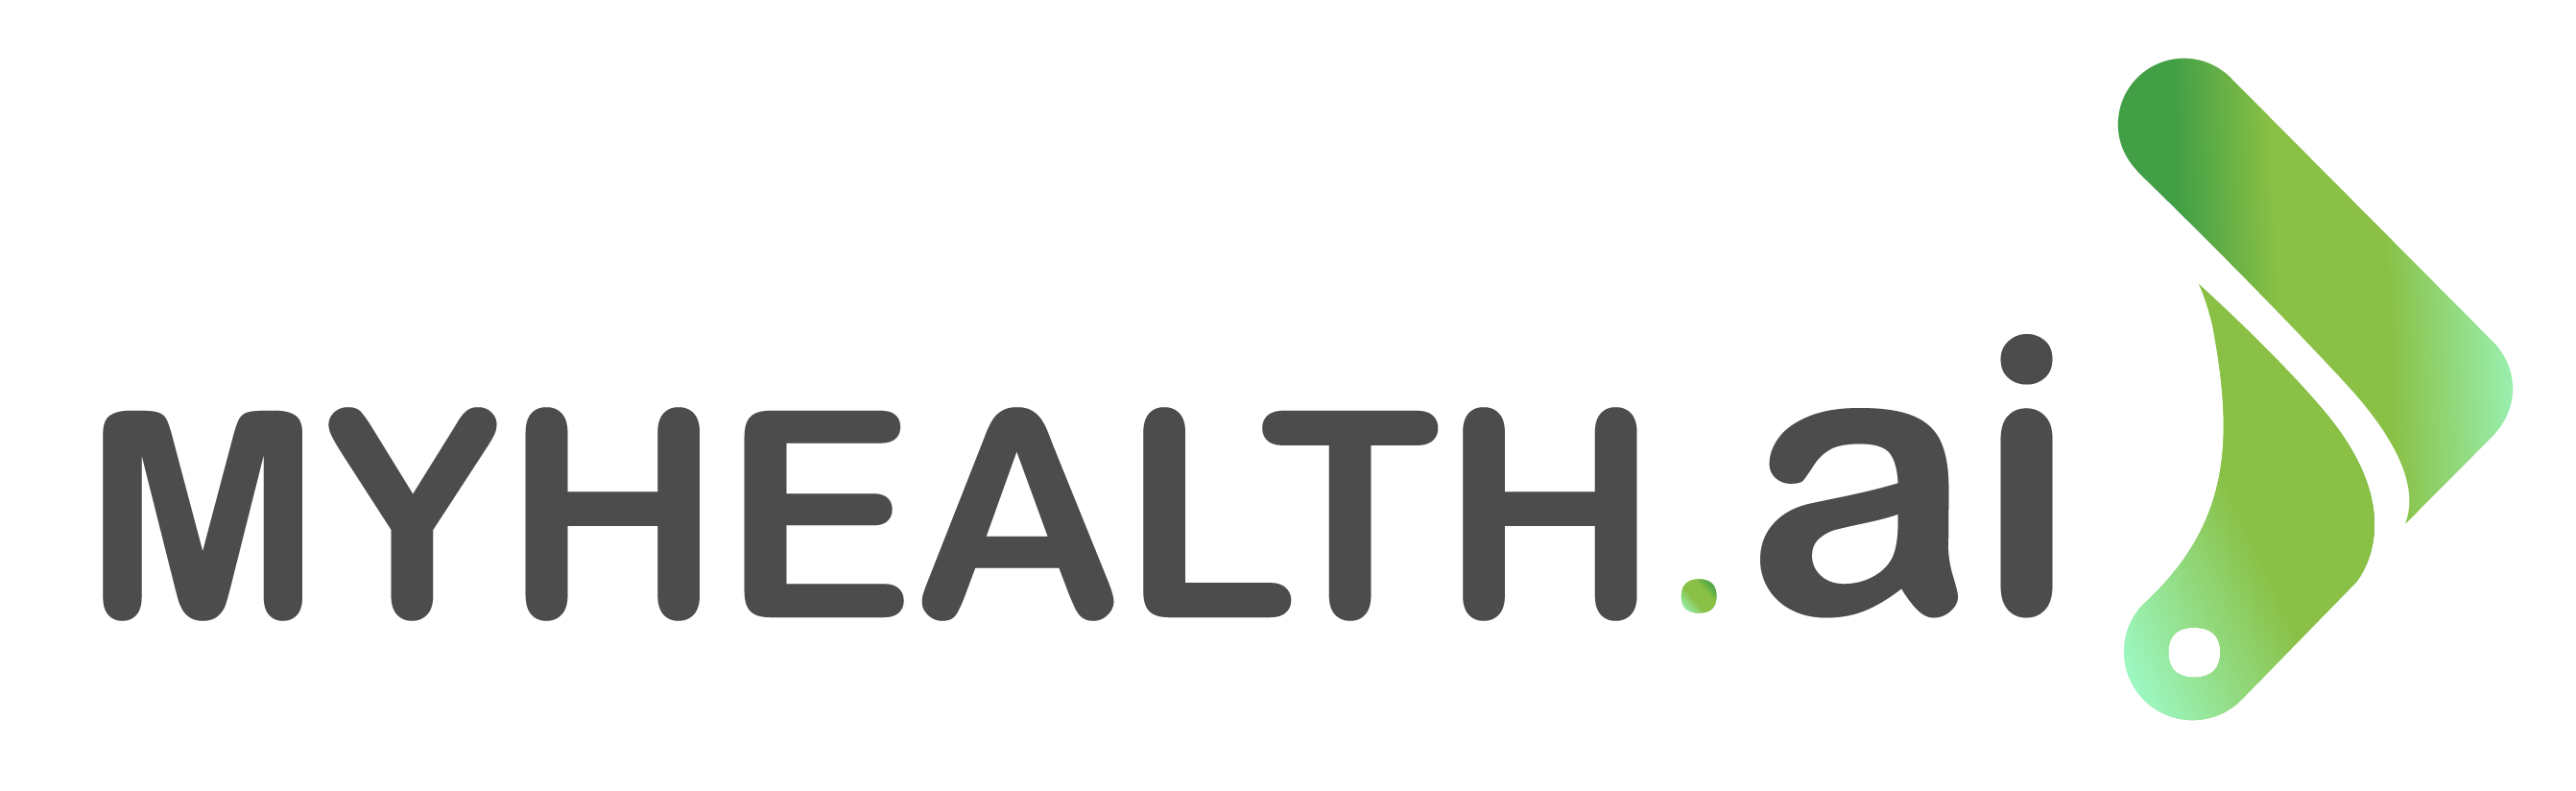 MYHEALTH.ai | Employee Wellness, Safety Screening App